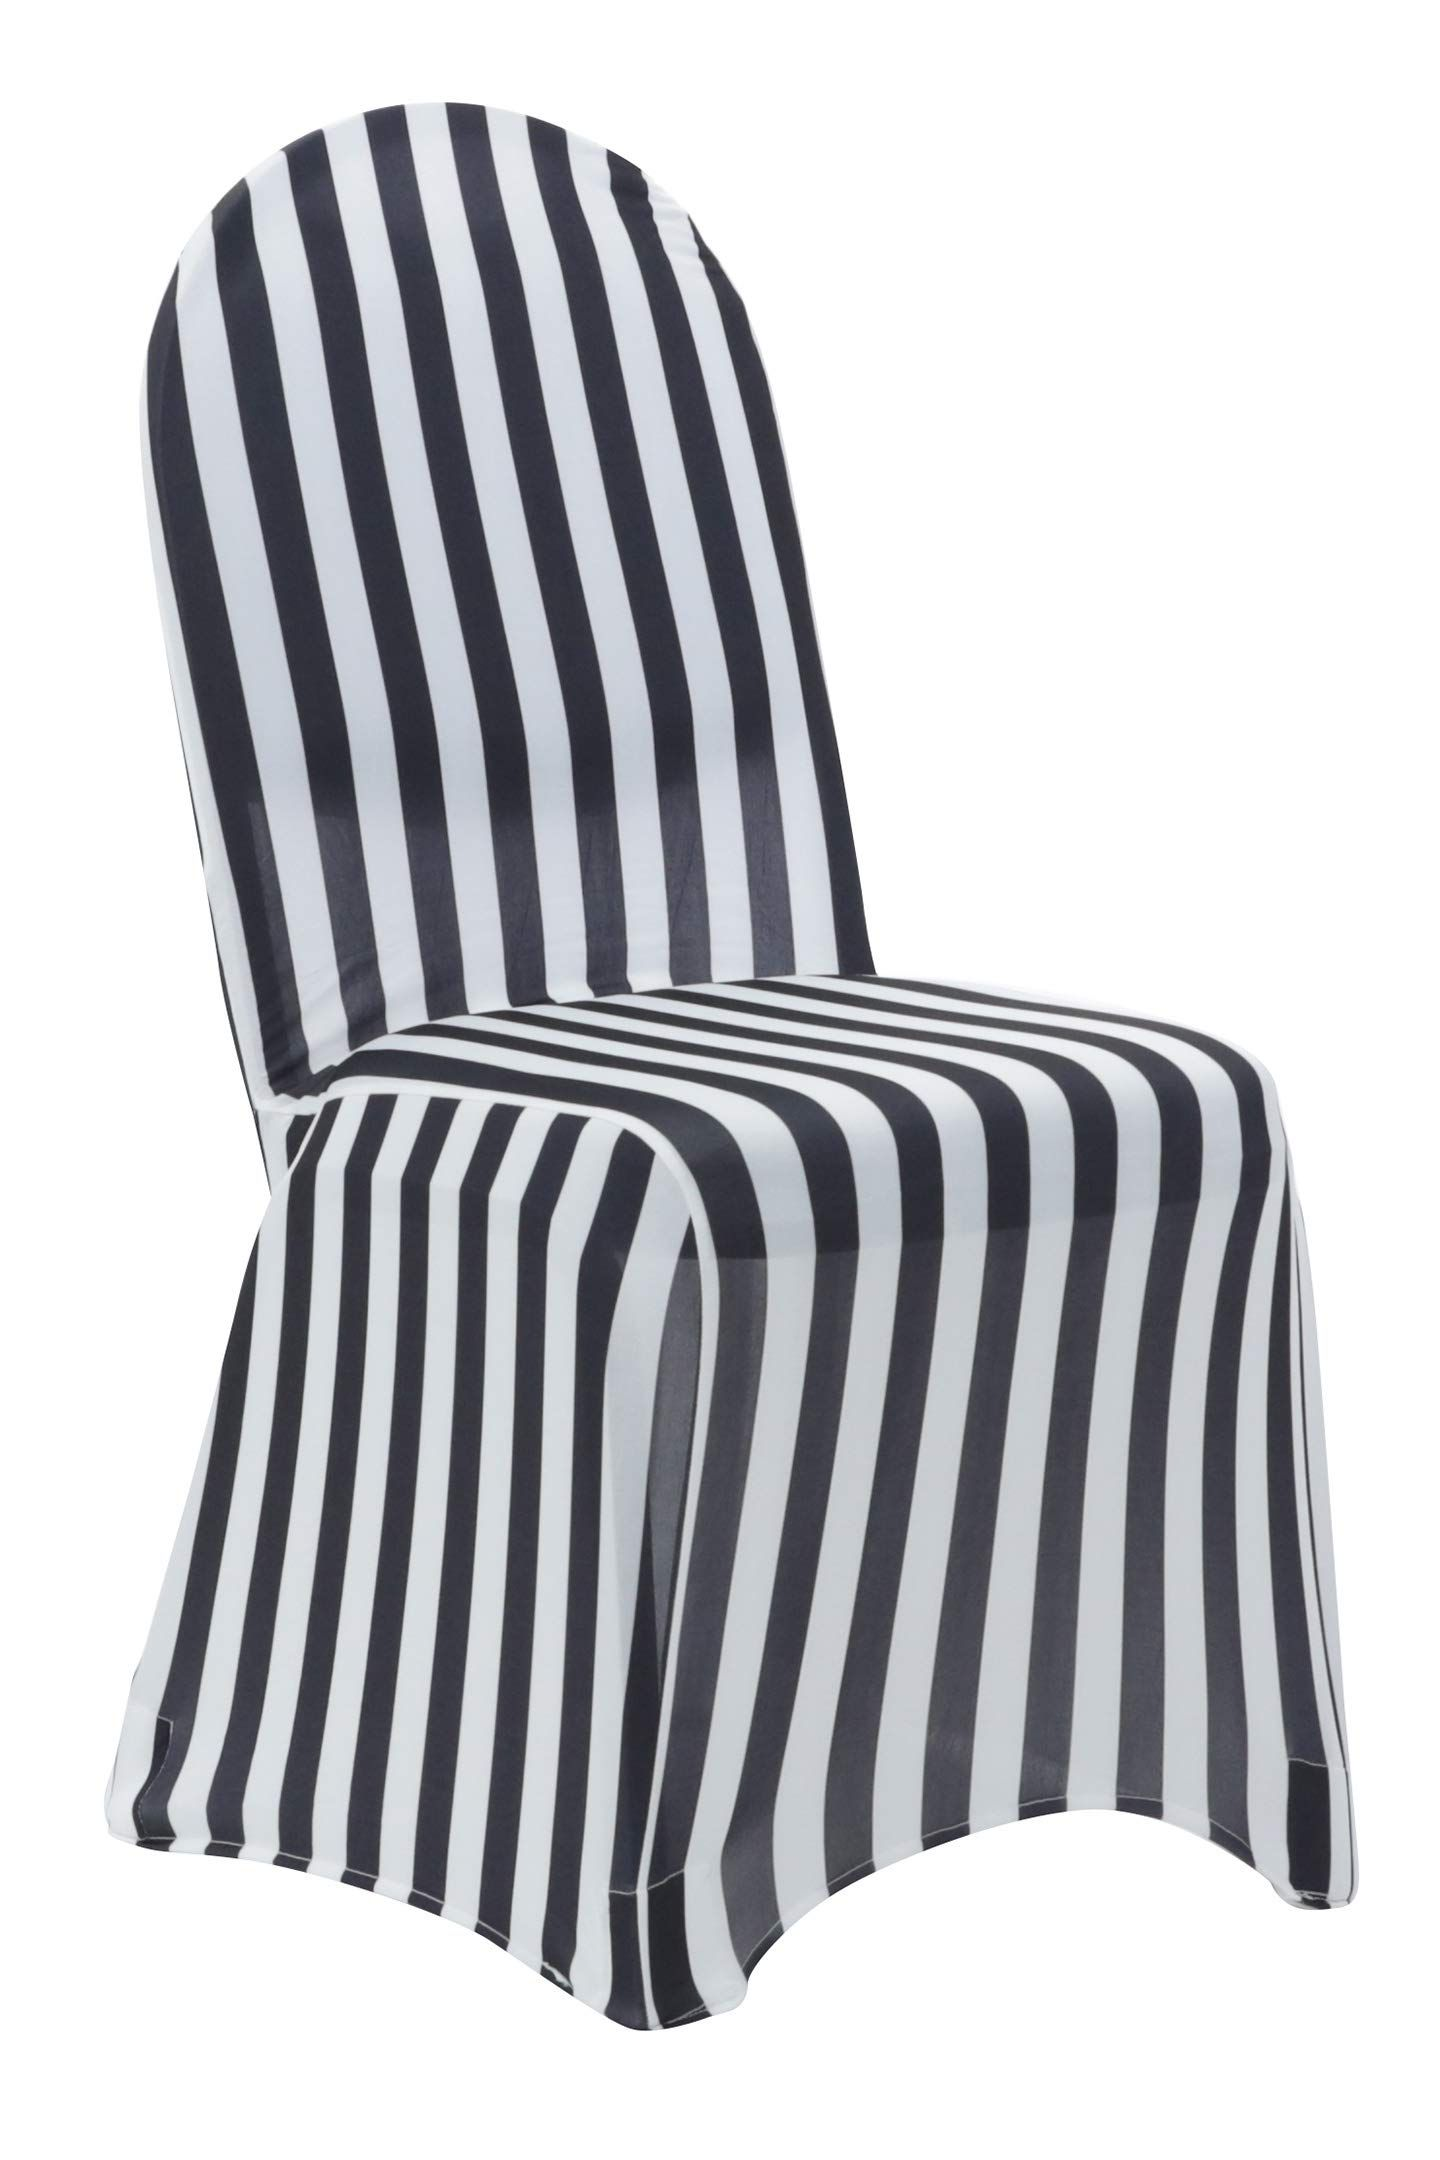 Your Chair Covers 6 Pack Stretch Spandex Chair Covers Striped Black And White Wedding Slip Covers Premium Quality Chair Cover Spandex Chair Covers Chair Covers Slipper Chair Slipcover